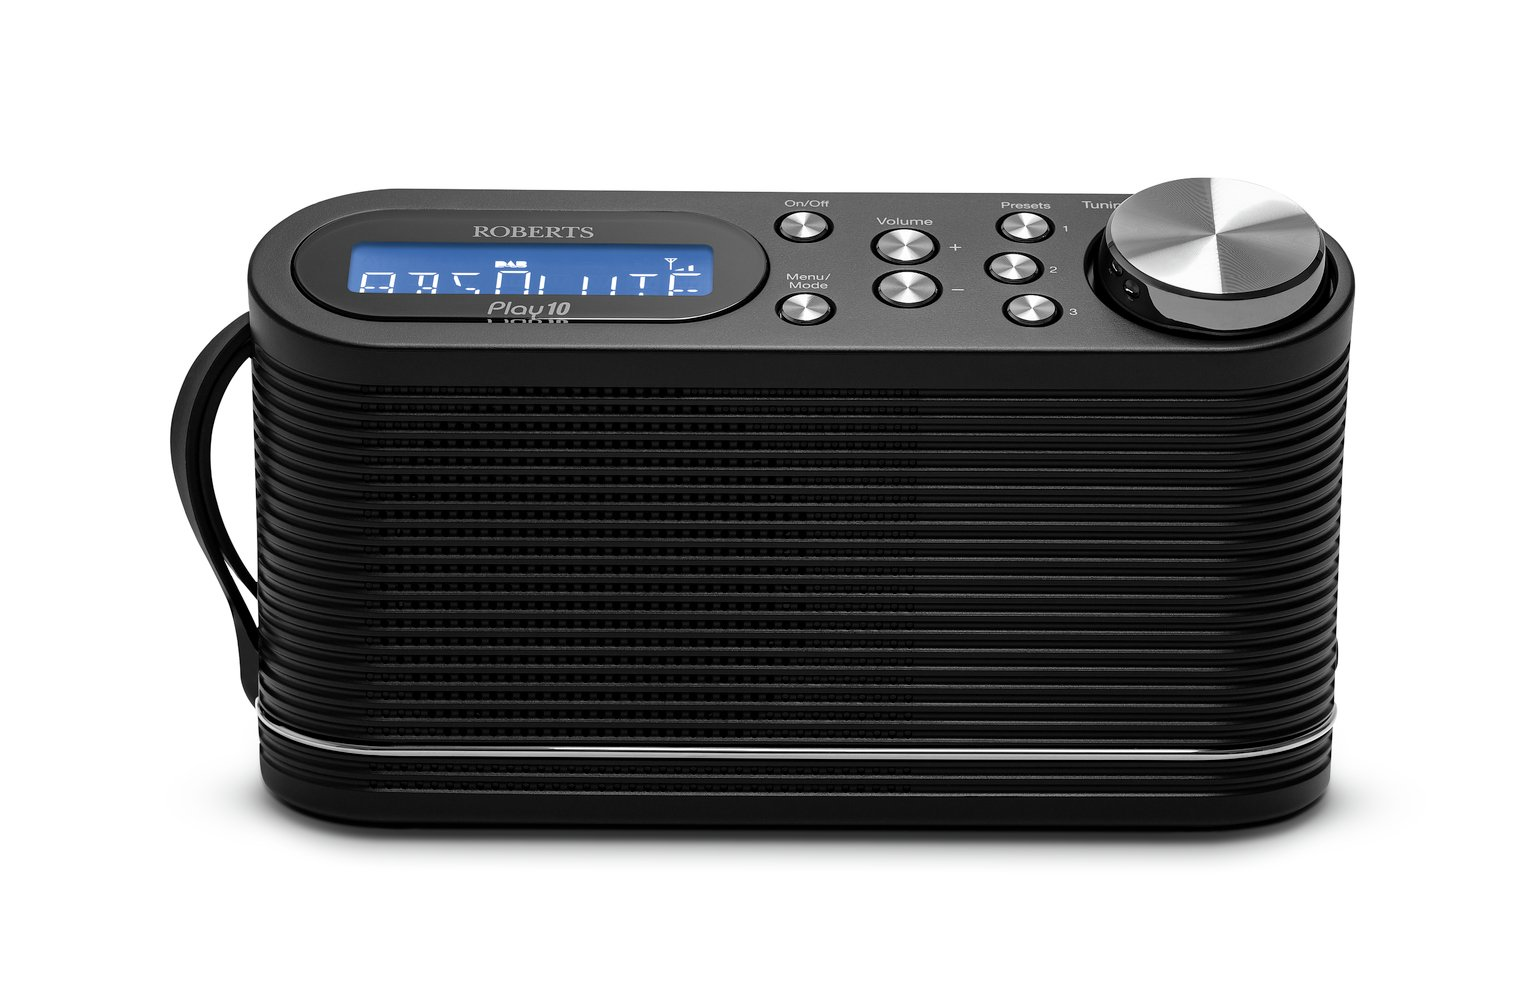 Roberts Play 10 DAB Radio - Black